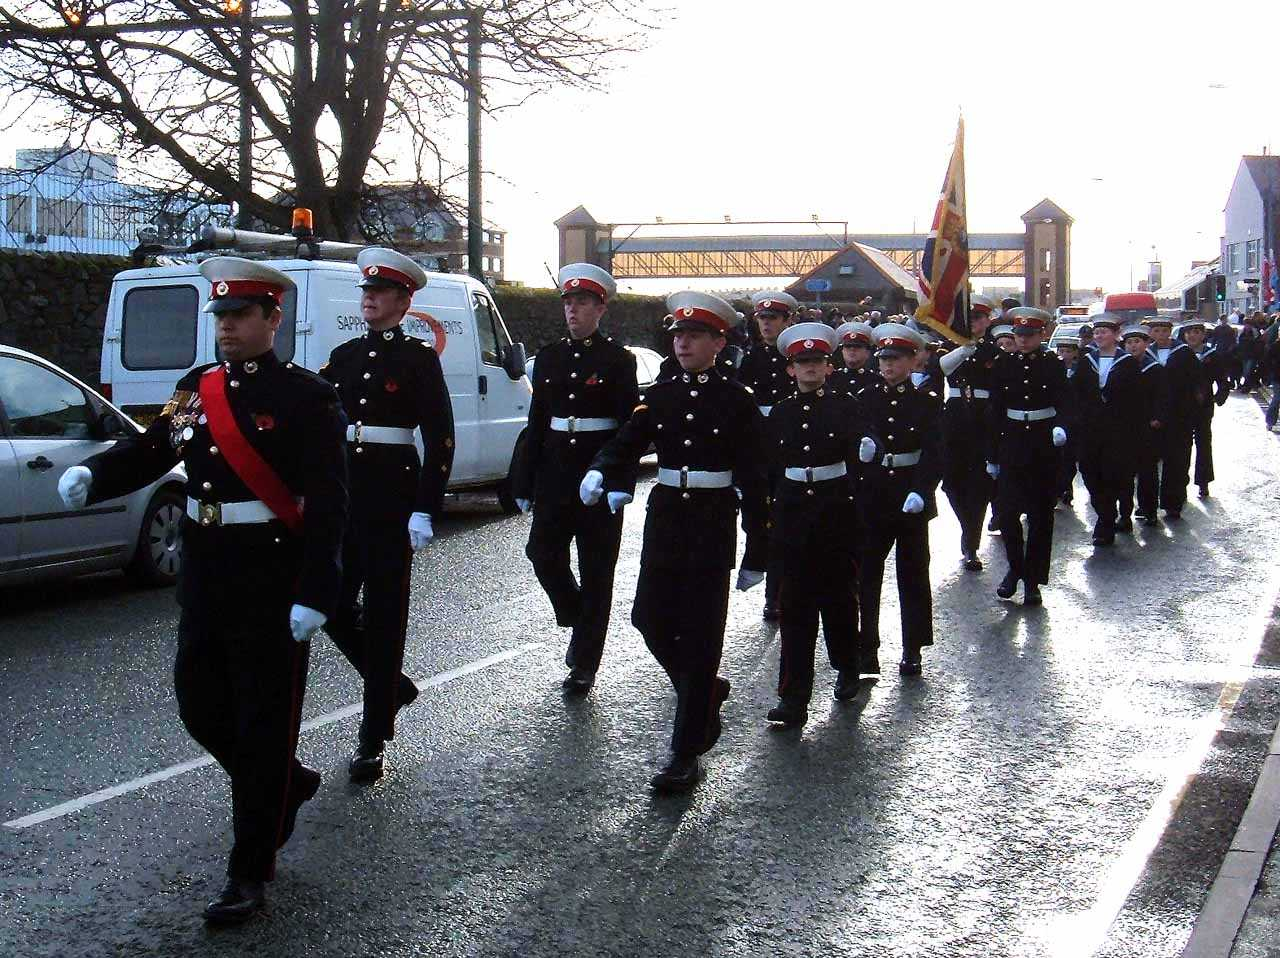 Anglesey, Holyhead, Remembrance Sunday 2006 - Sea Cadet and Marine Corps Marching